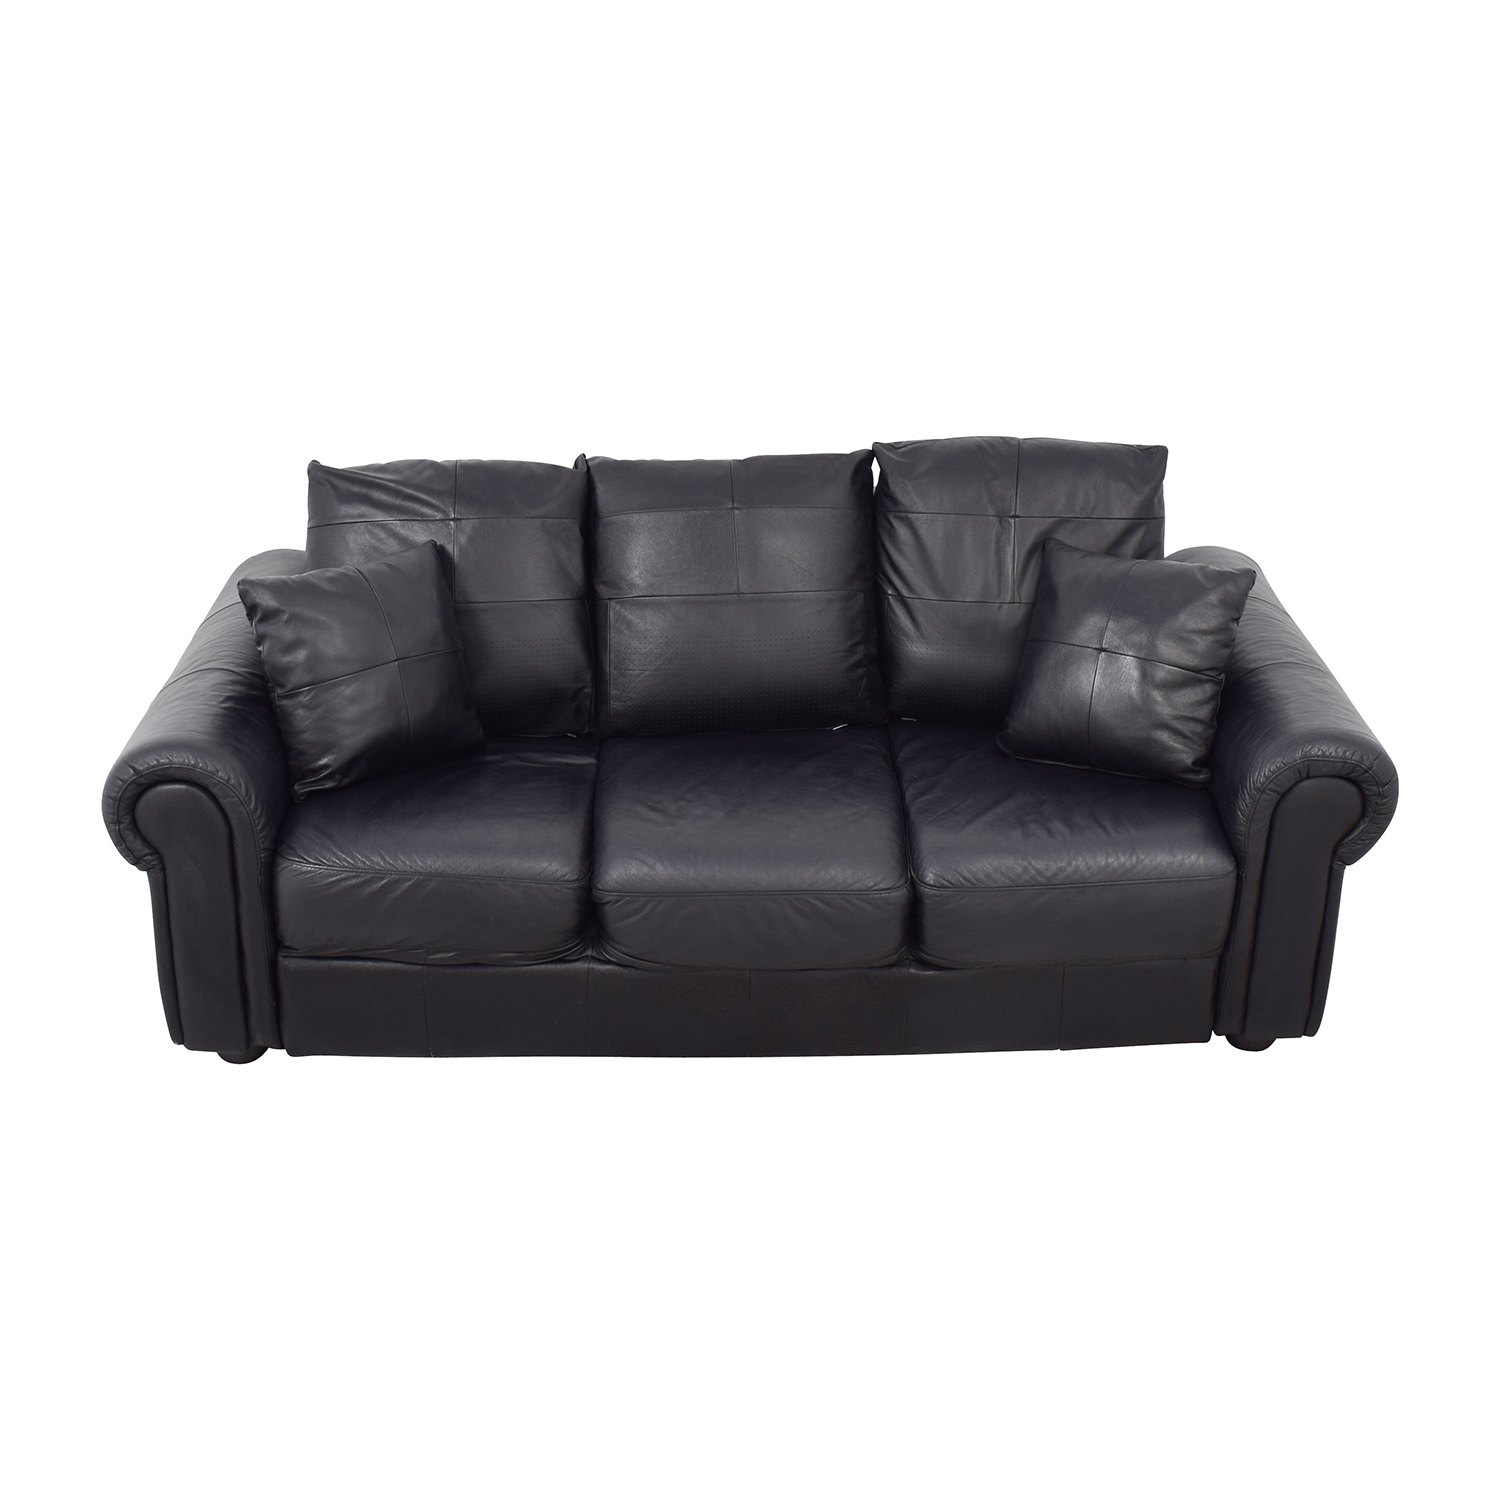 ABC Carpet and Home ABC Carpet & Home Black Leather Couch second hand